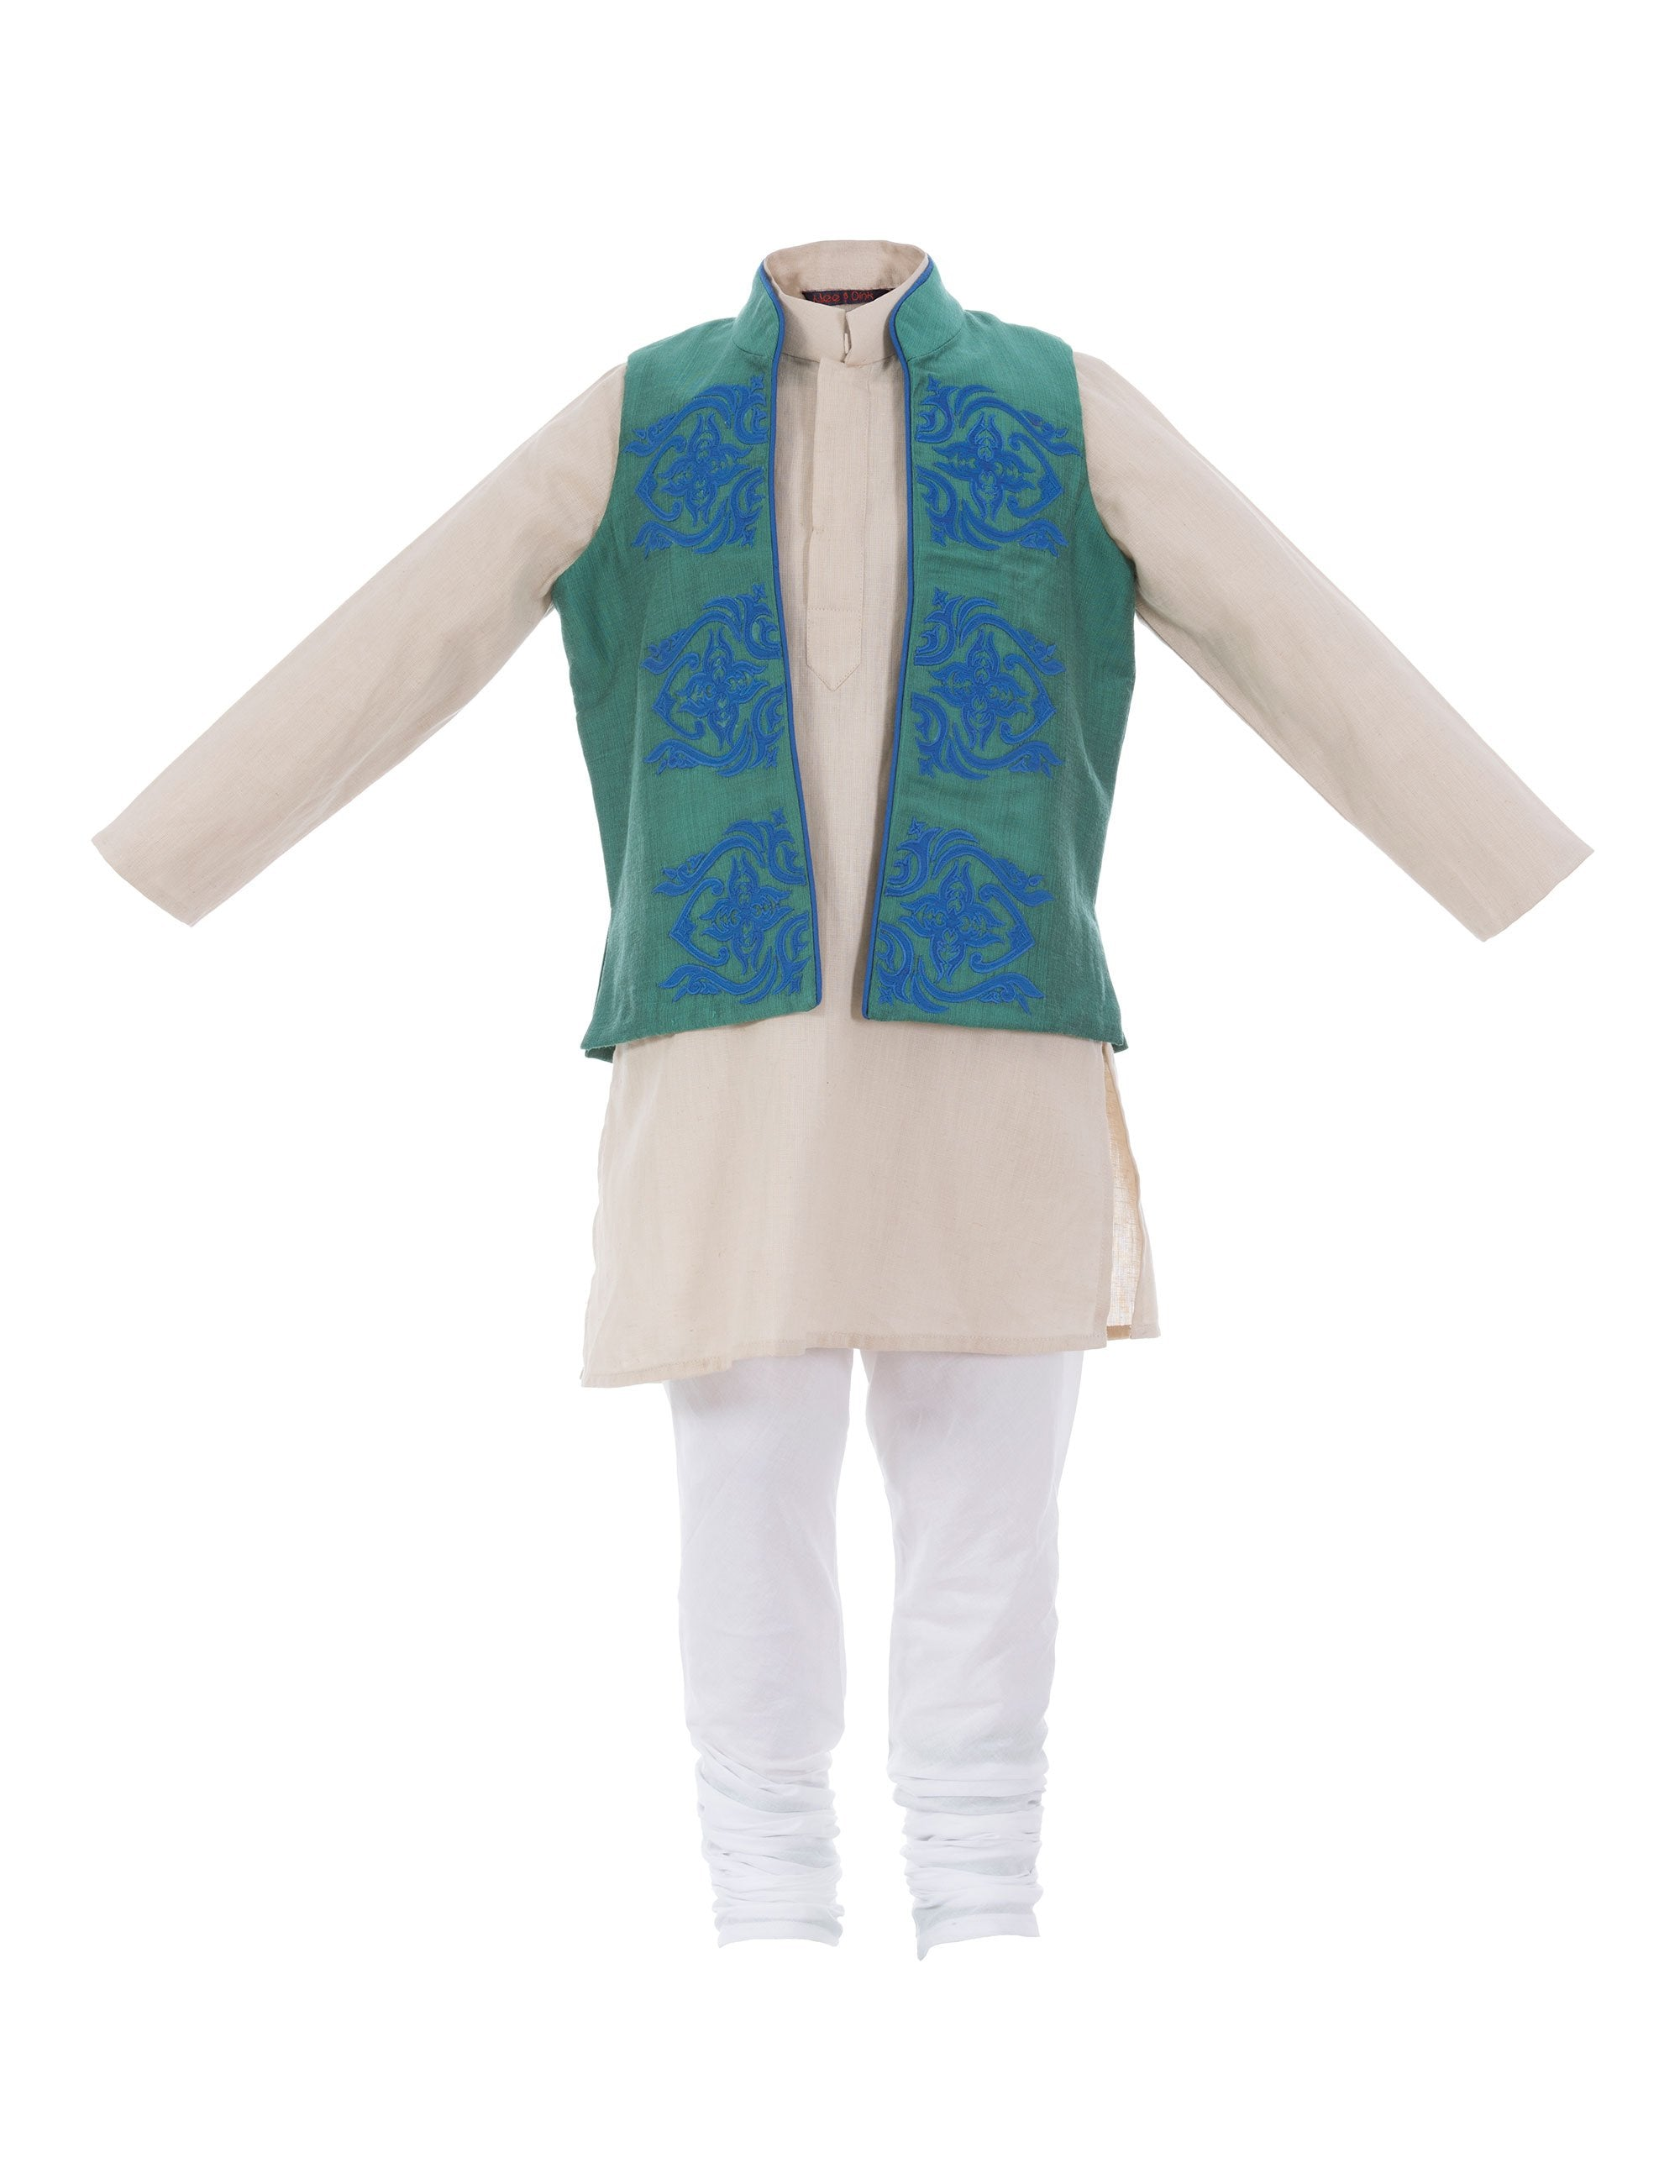 Applique Kurta Jacket in Blue Colour for Boys